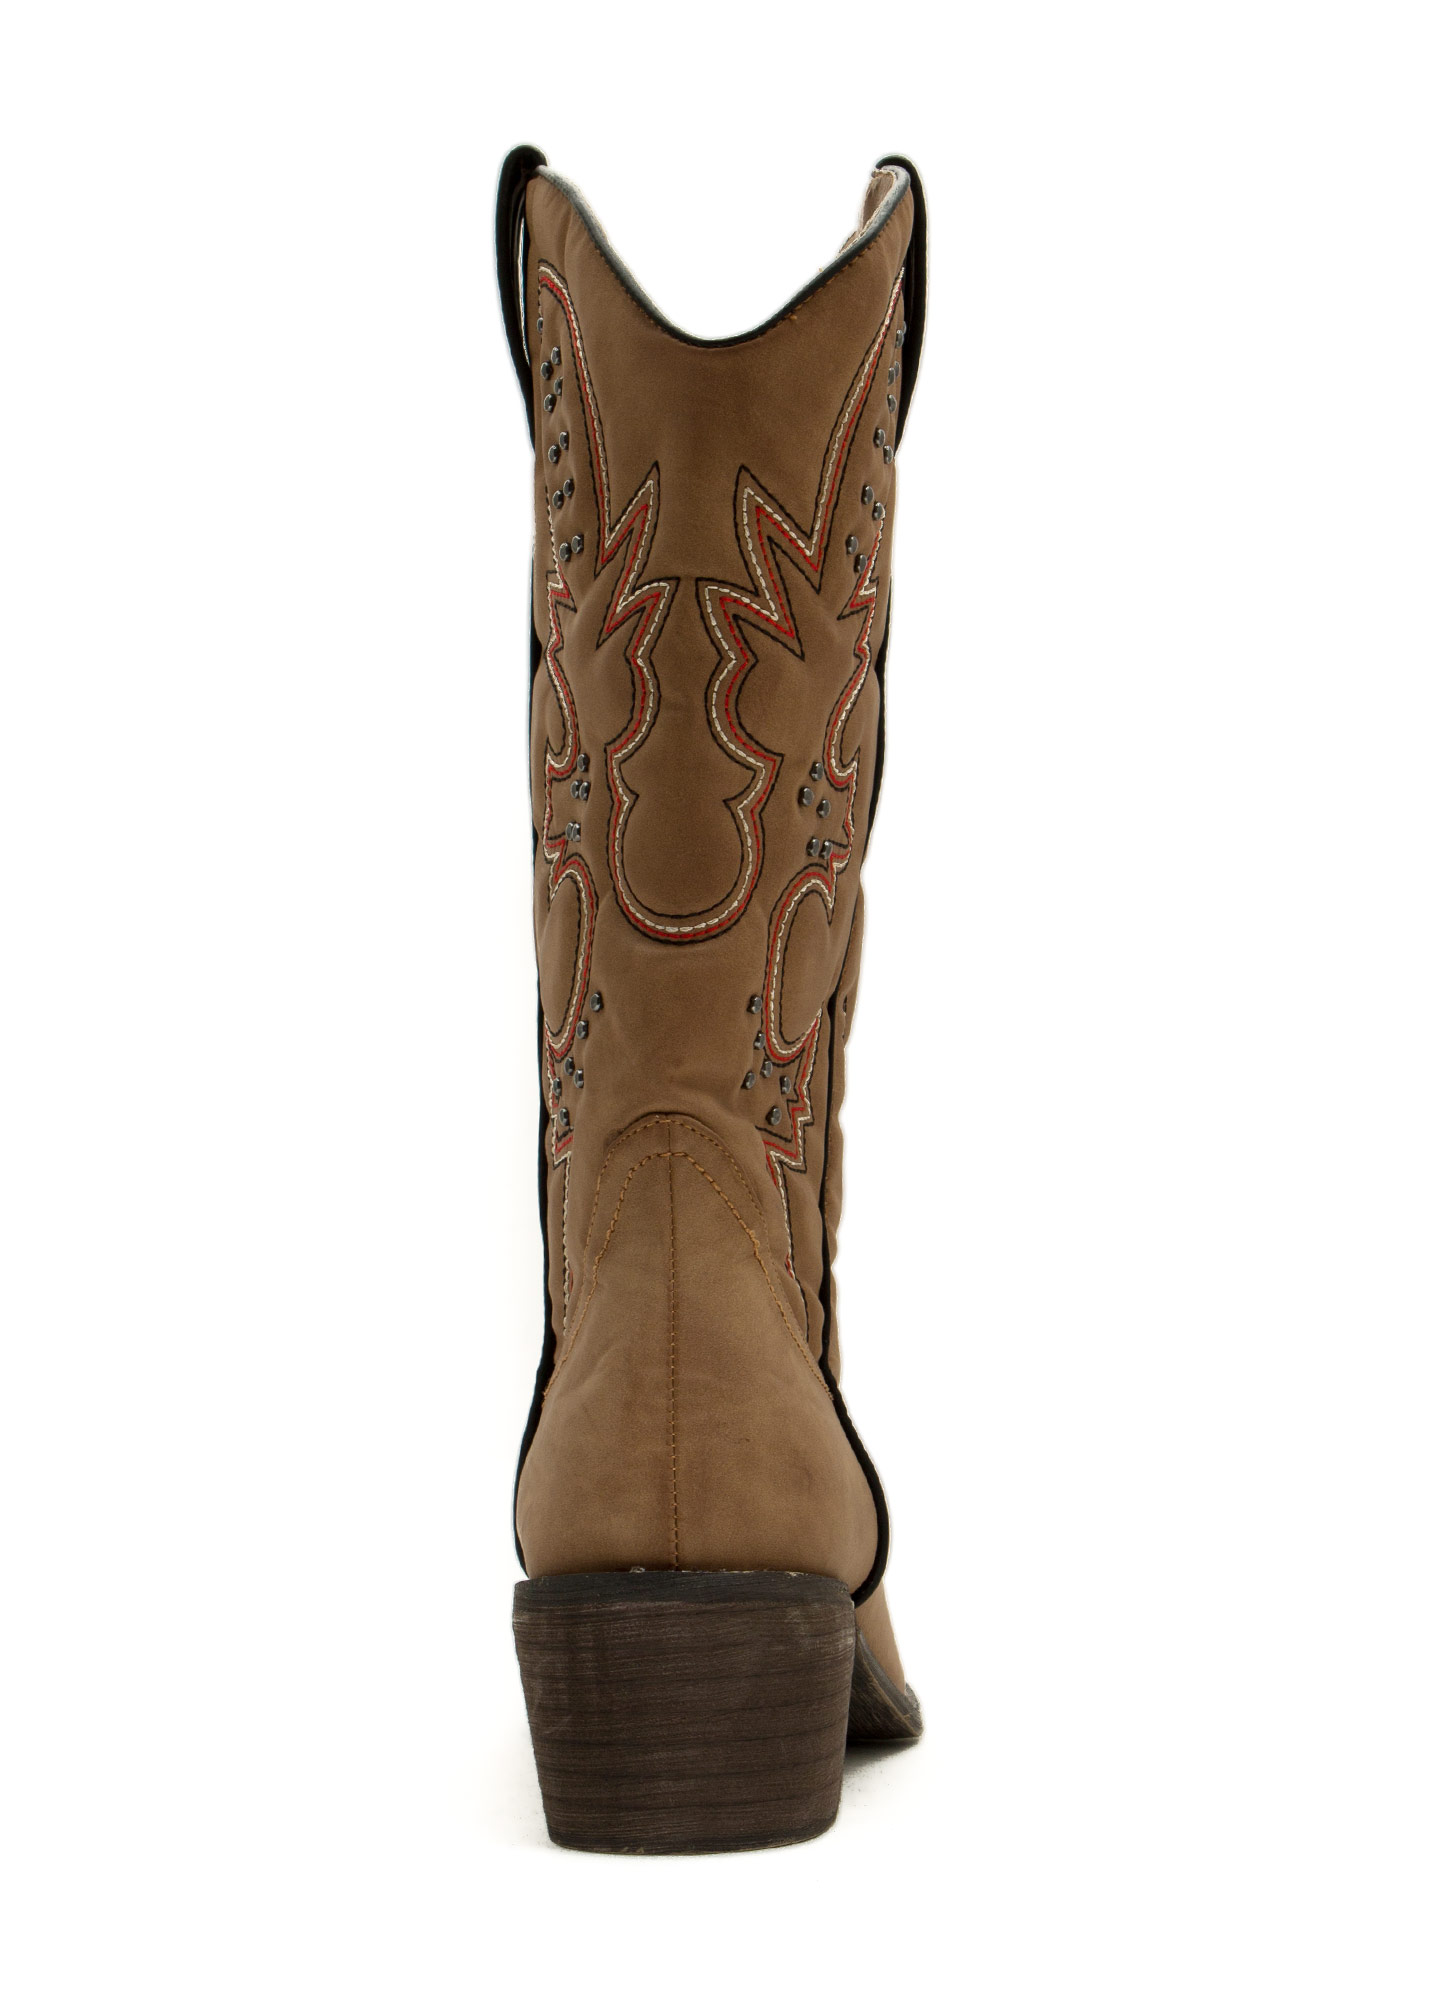 Get Stitches Studded Cowgirl Boots TAN (Final Sale)